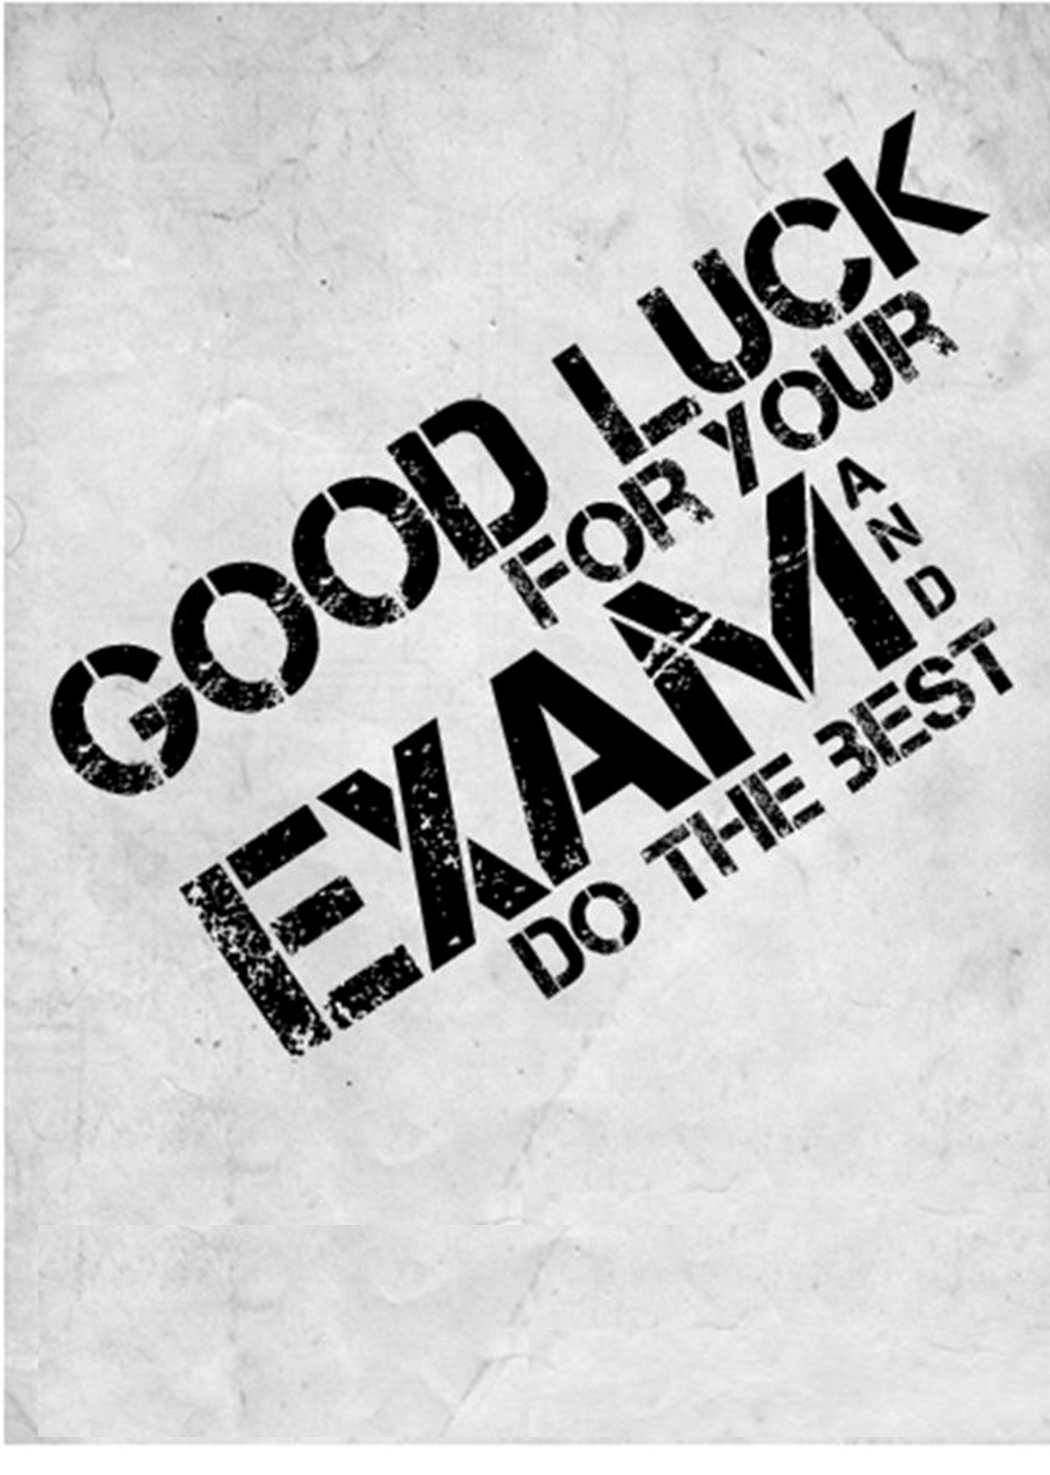 ... Few words @bout Myself...: Best of Luck for your Exam and Do the best